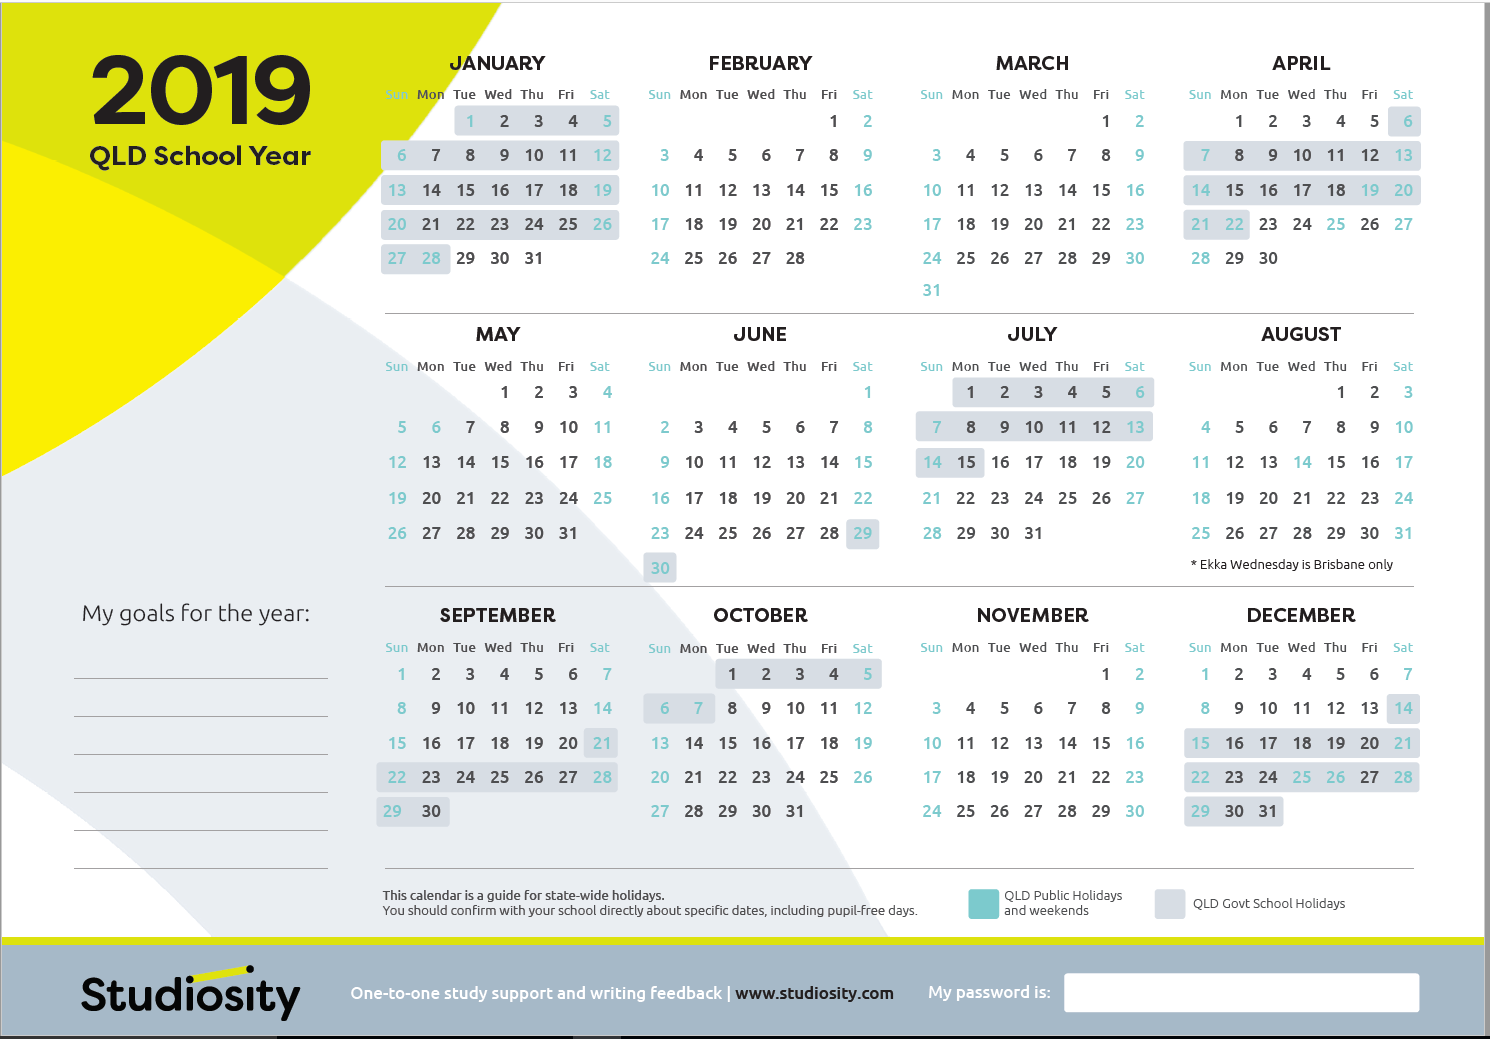 2019 Calendar Qld School School terms and public holiday dates for QLD in 2019 | Studiosity